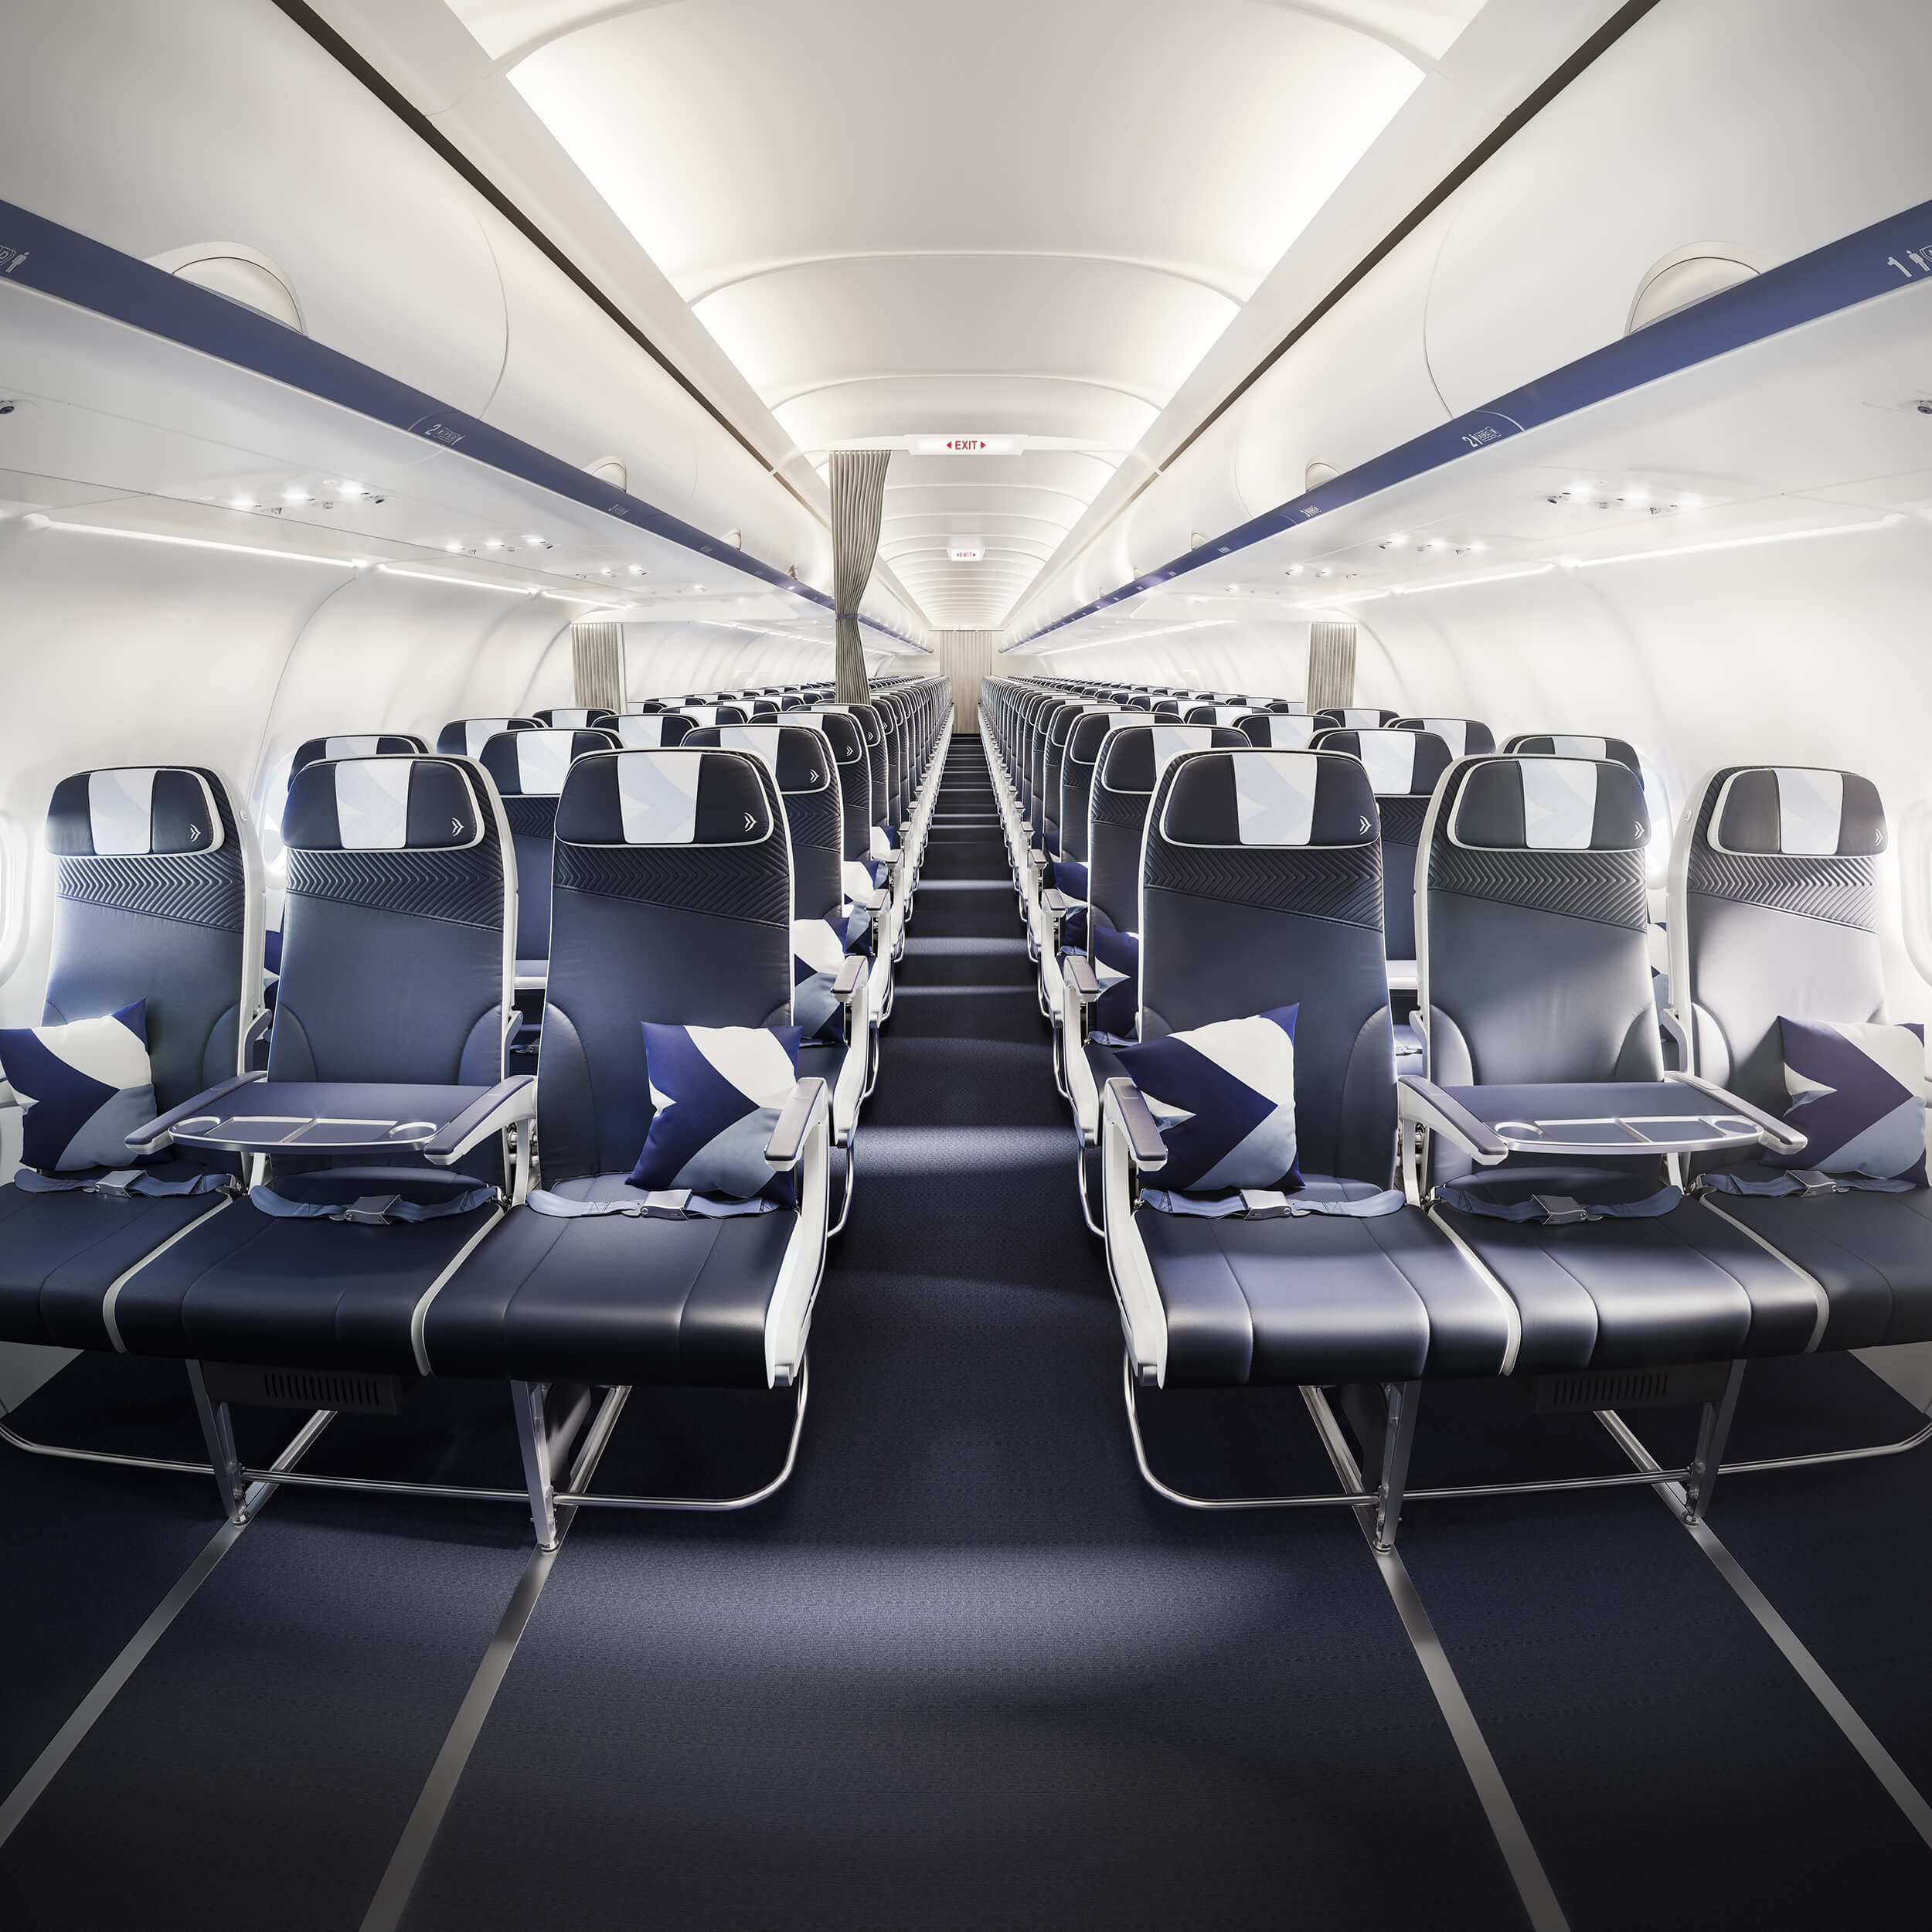 Full view of the Aegean Airlines Neo aircraft cabin interior